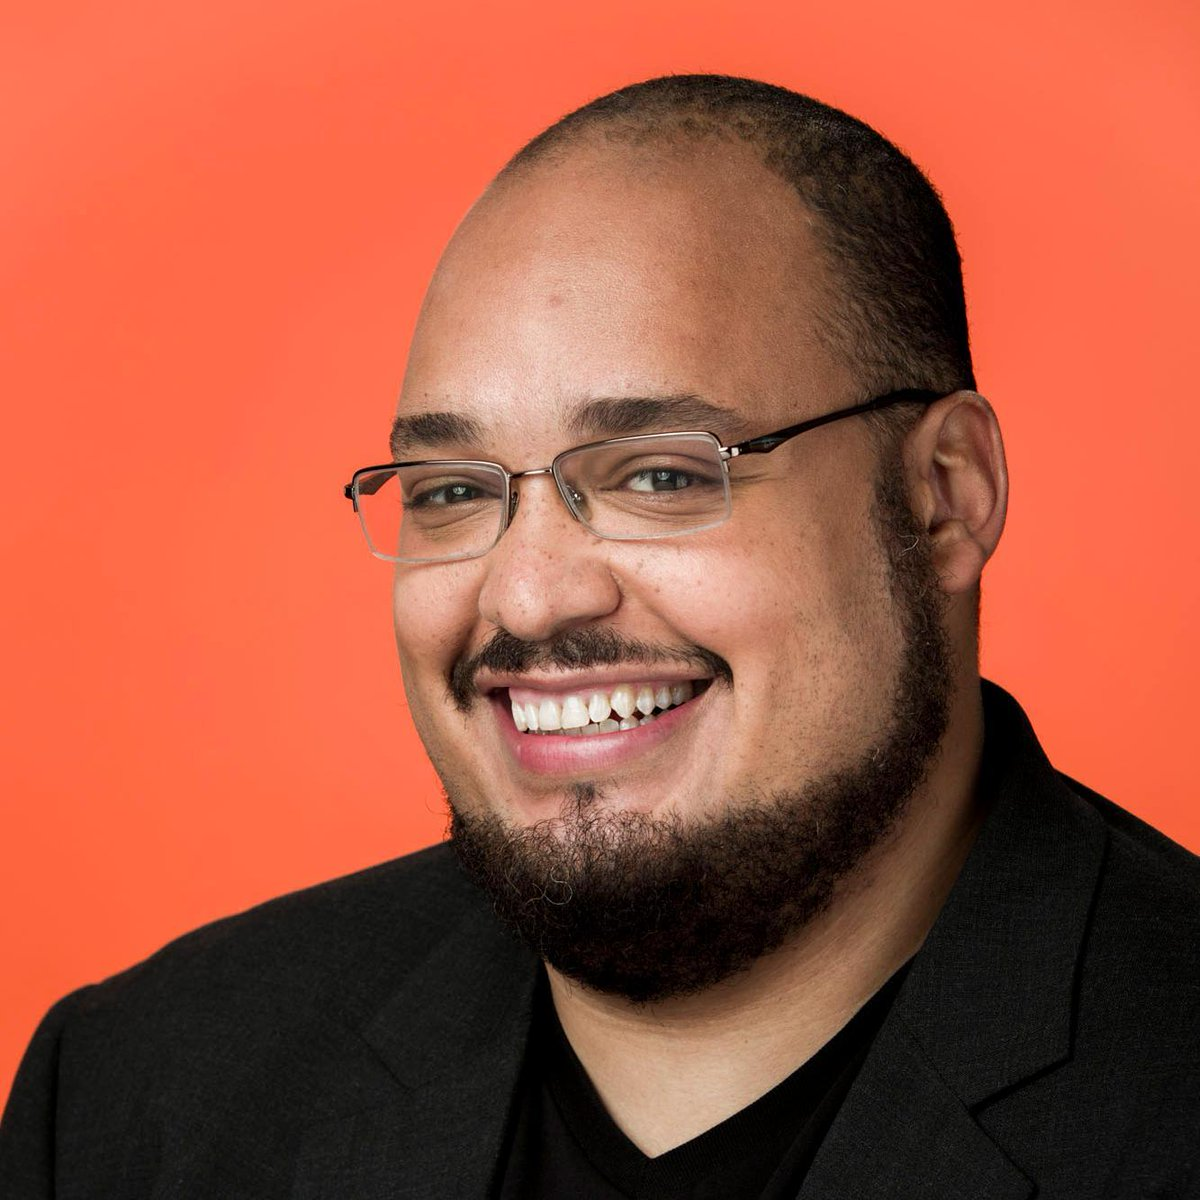 Thinking about applying to @ycombinator? We're hosting a Twitter Q&A with YC Partner @mwseibel - March 9 @ 11AM PST http://t.co/pNbO0xi0Kq